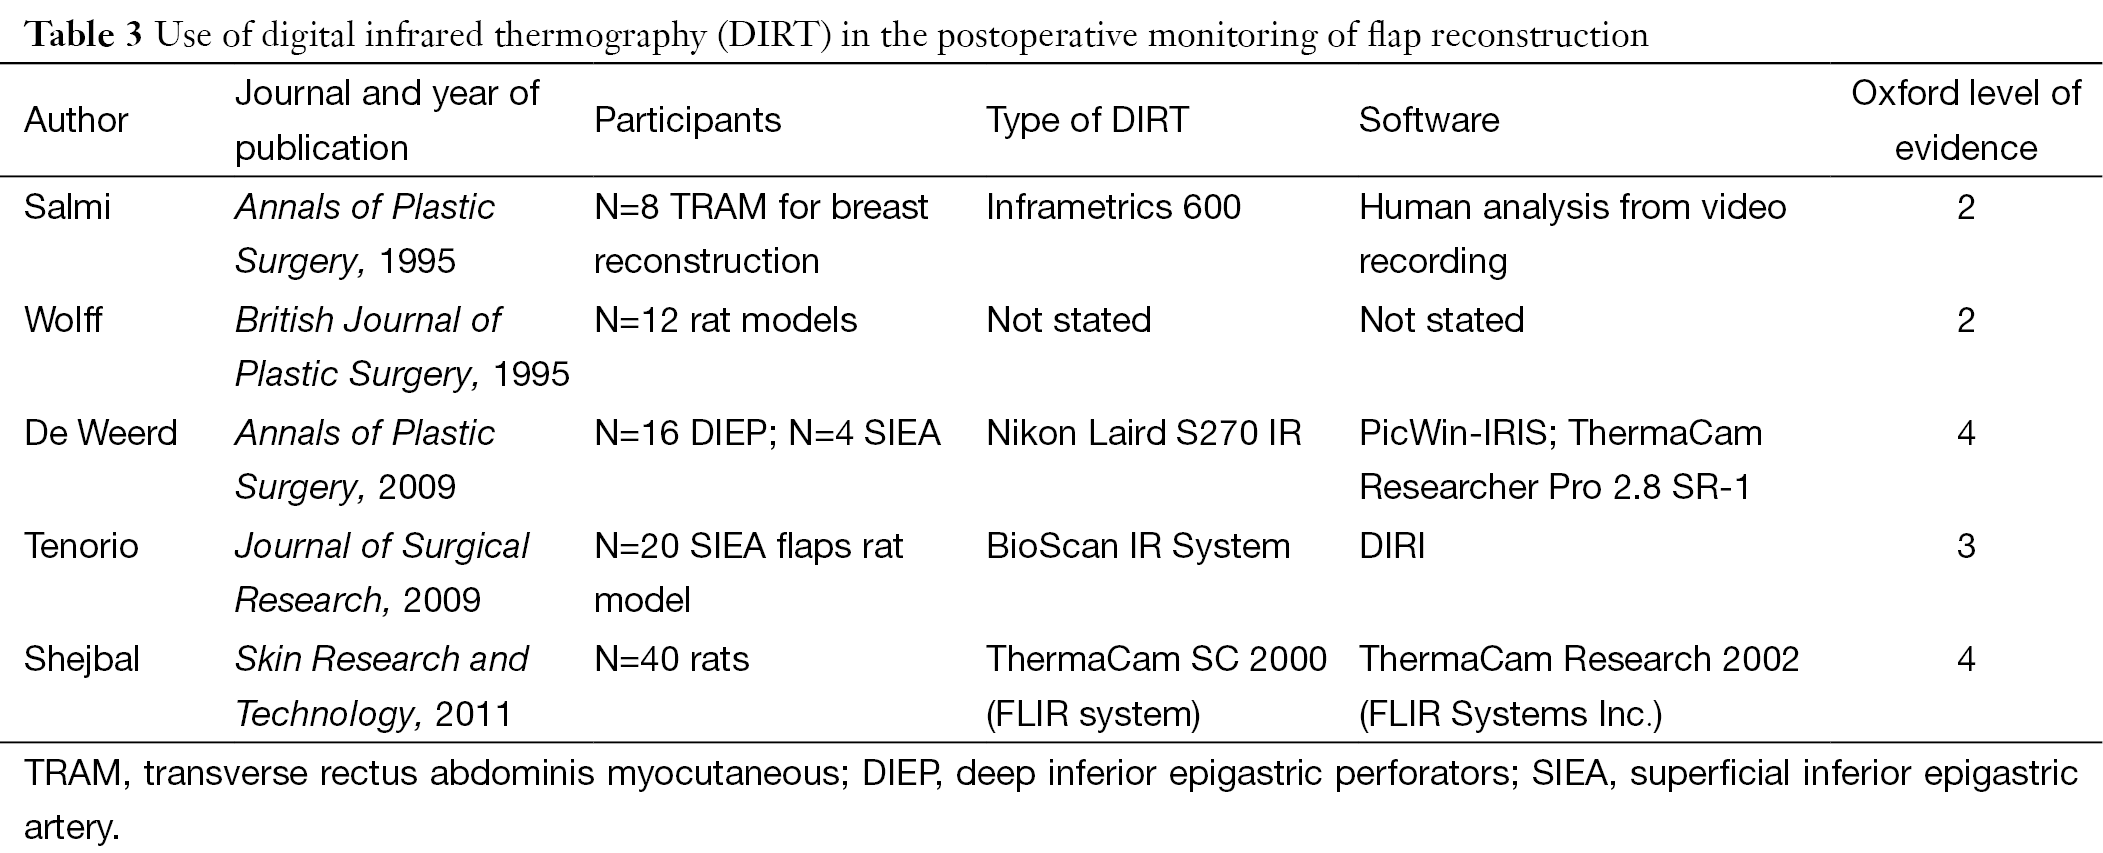 Clinical applications of dynamic infrared thermography in